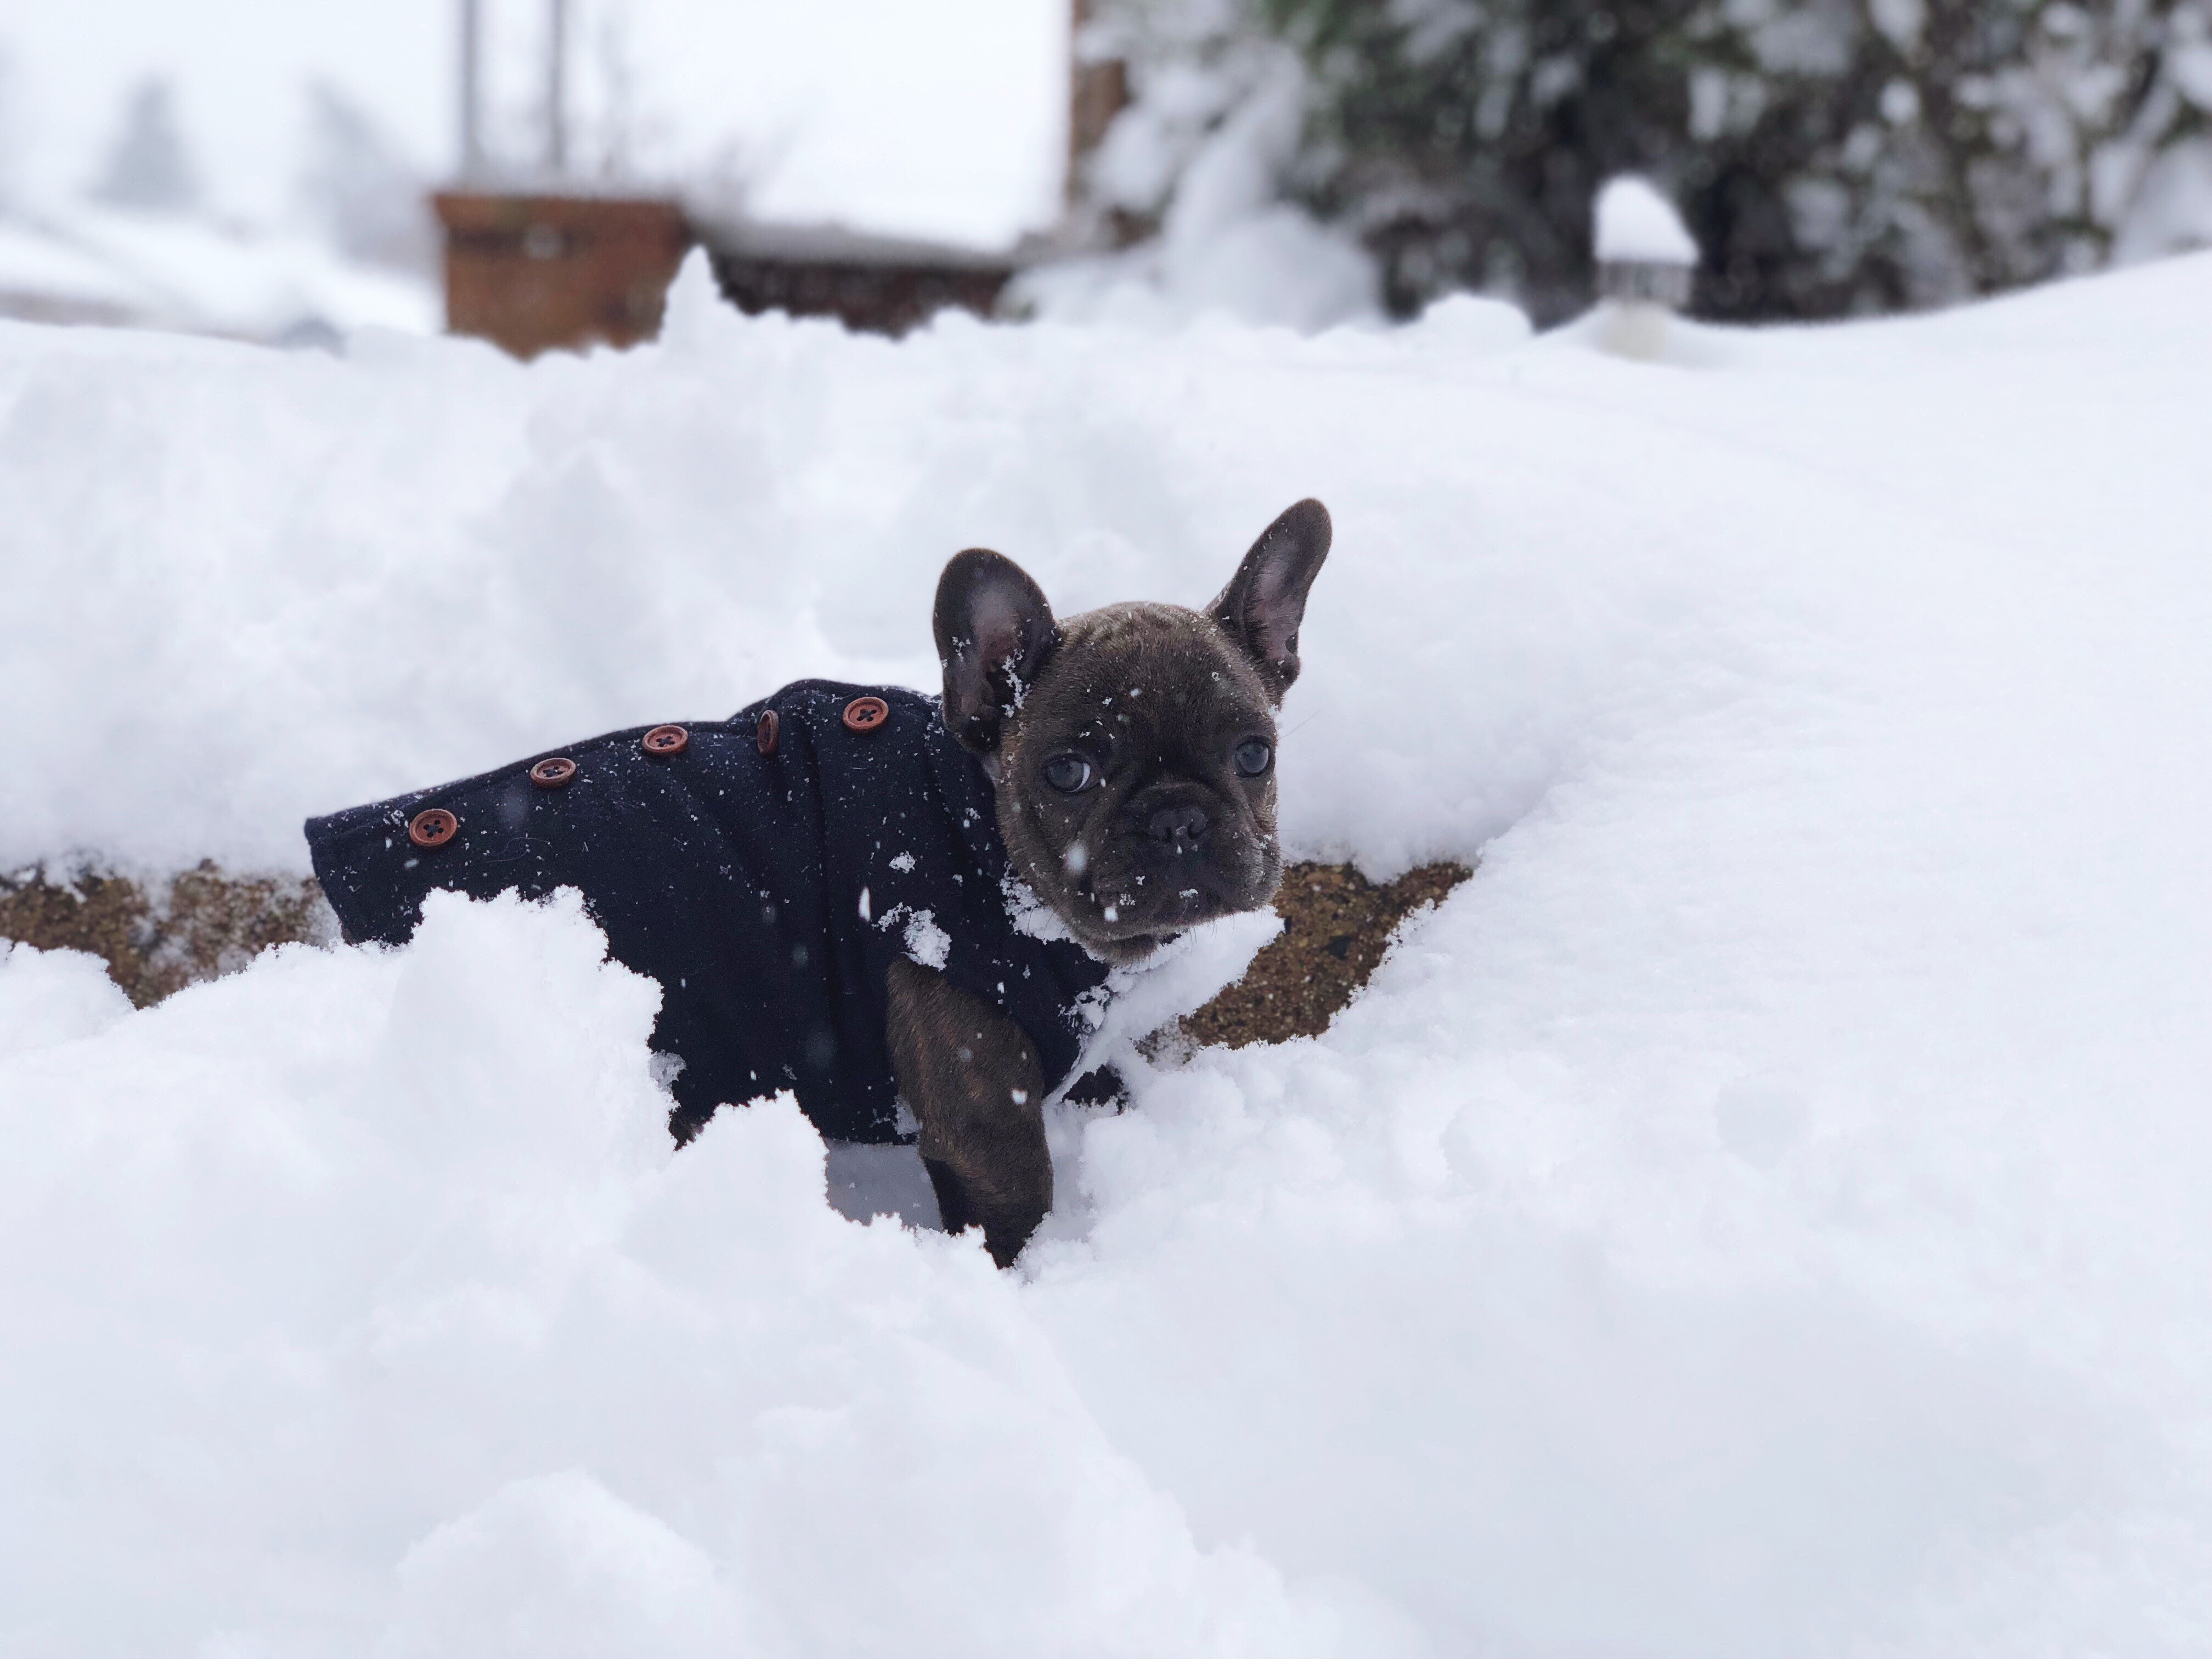 D.C. finally got its first real snowfall of the season -- on March 21! Given that it's the probably the only flakes we'll see for a while, the pups of the DMV decided to really live it up. Check out a few of the adorable pets we spotted chilling in the snow today!{ } (Image: Courtesy IG user @linnarosethefrenchie)